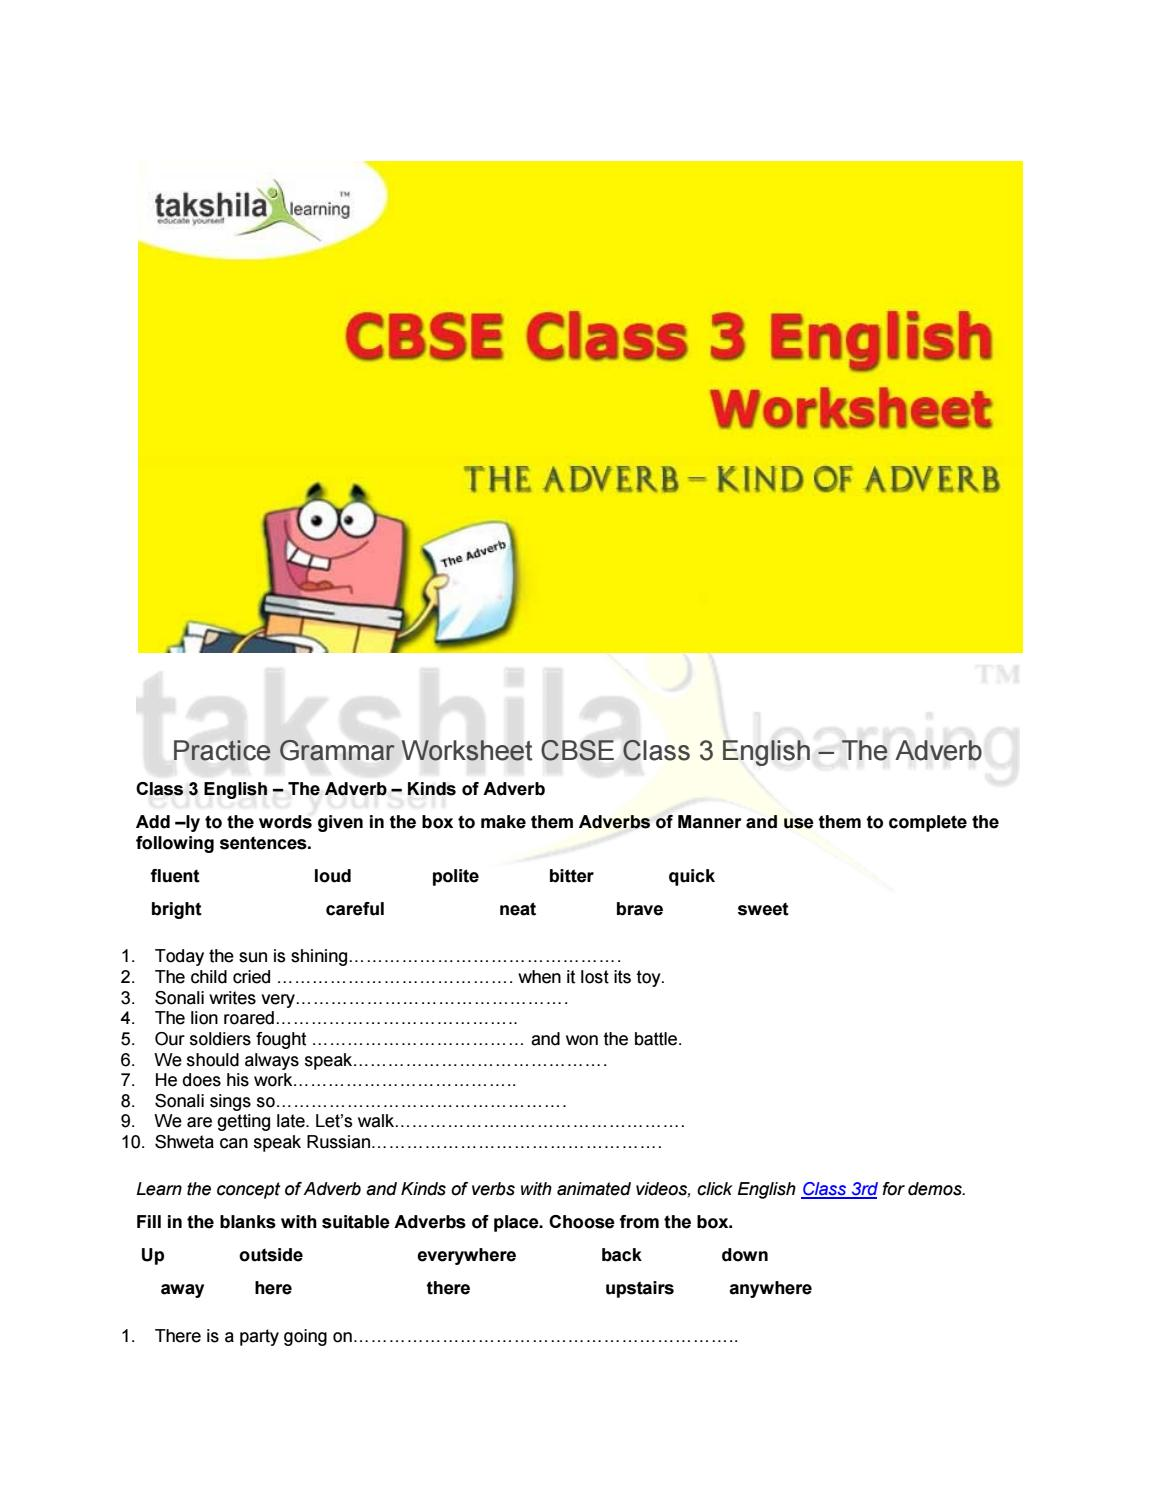 - Practice Grammar Worksheet For Cbse Class 3 English The Adverb By